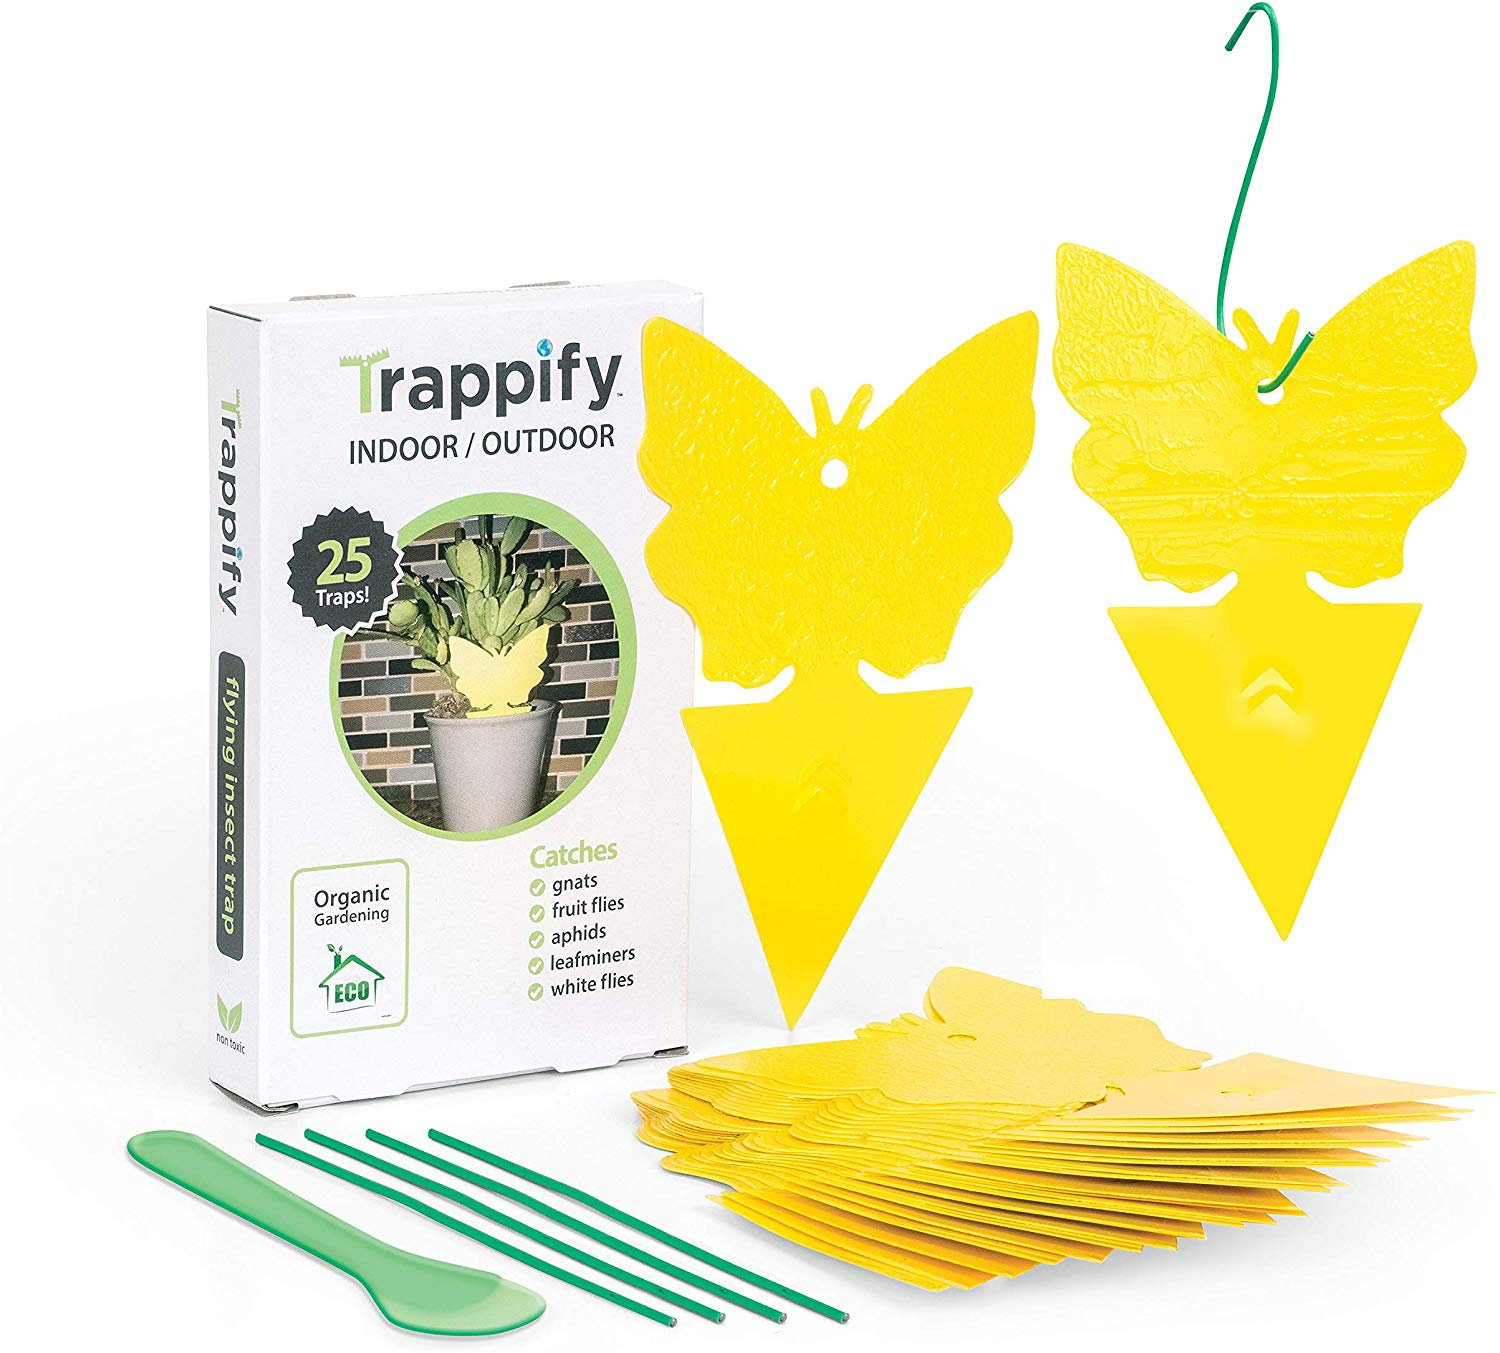 Trappify Sticky Fruit Fly and Gnat Trap